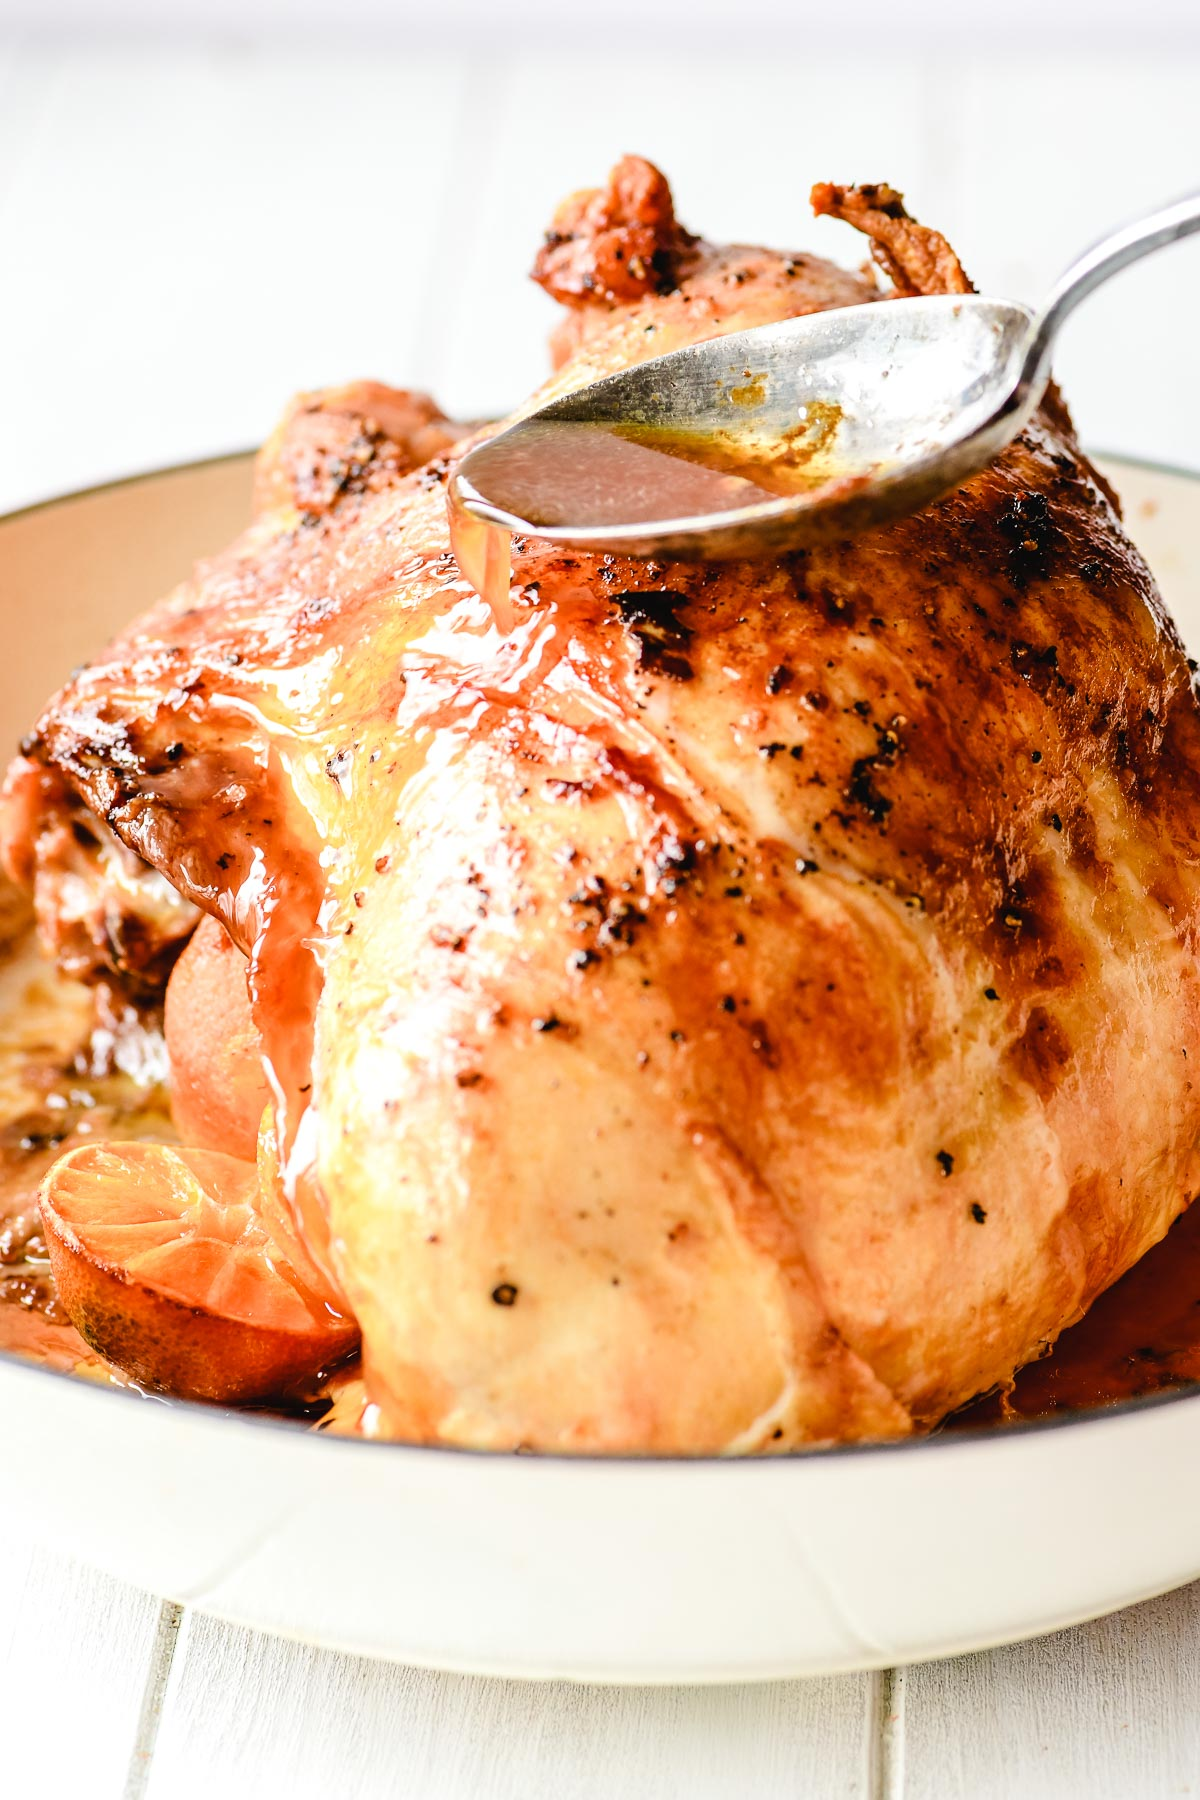 Basting a turkey breast in a braising pan